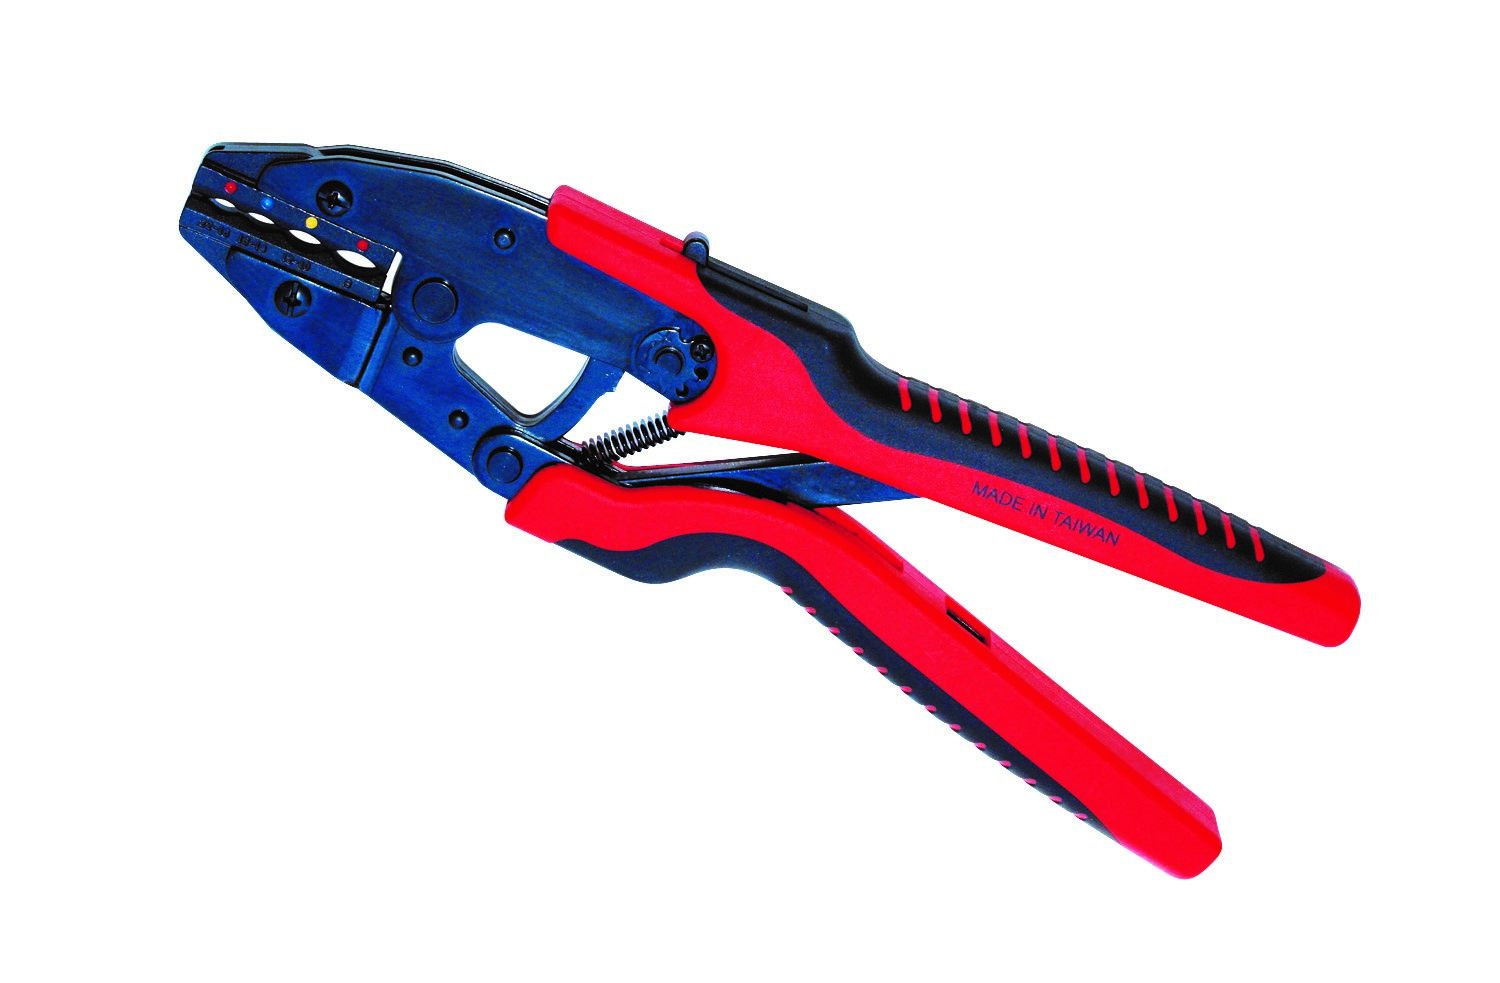 Deluxe Ratchet Crimp Tool